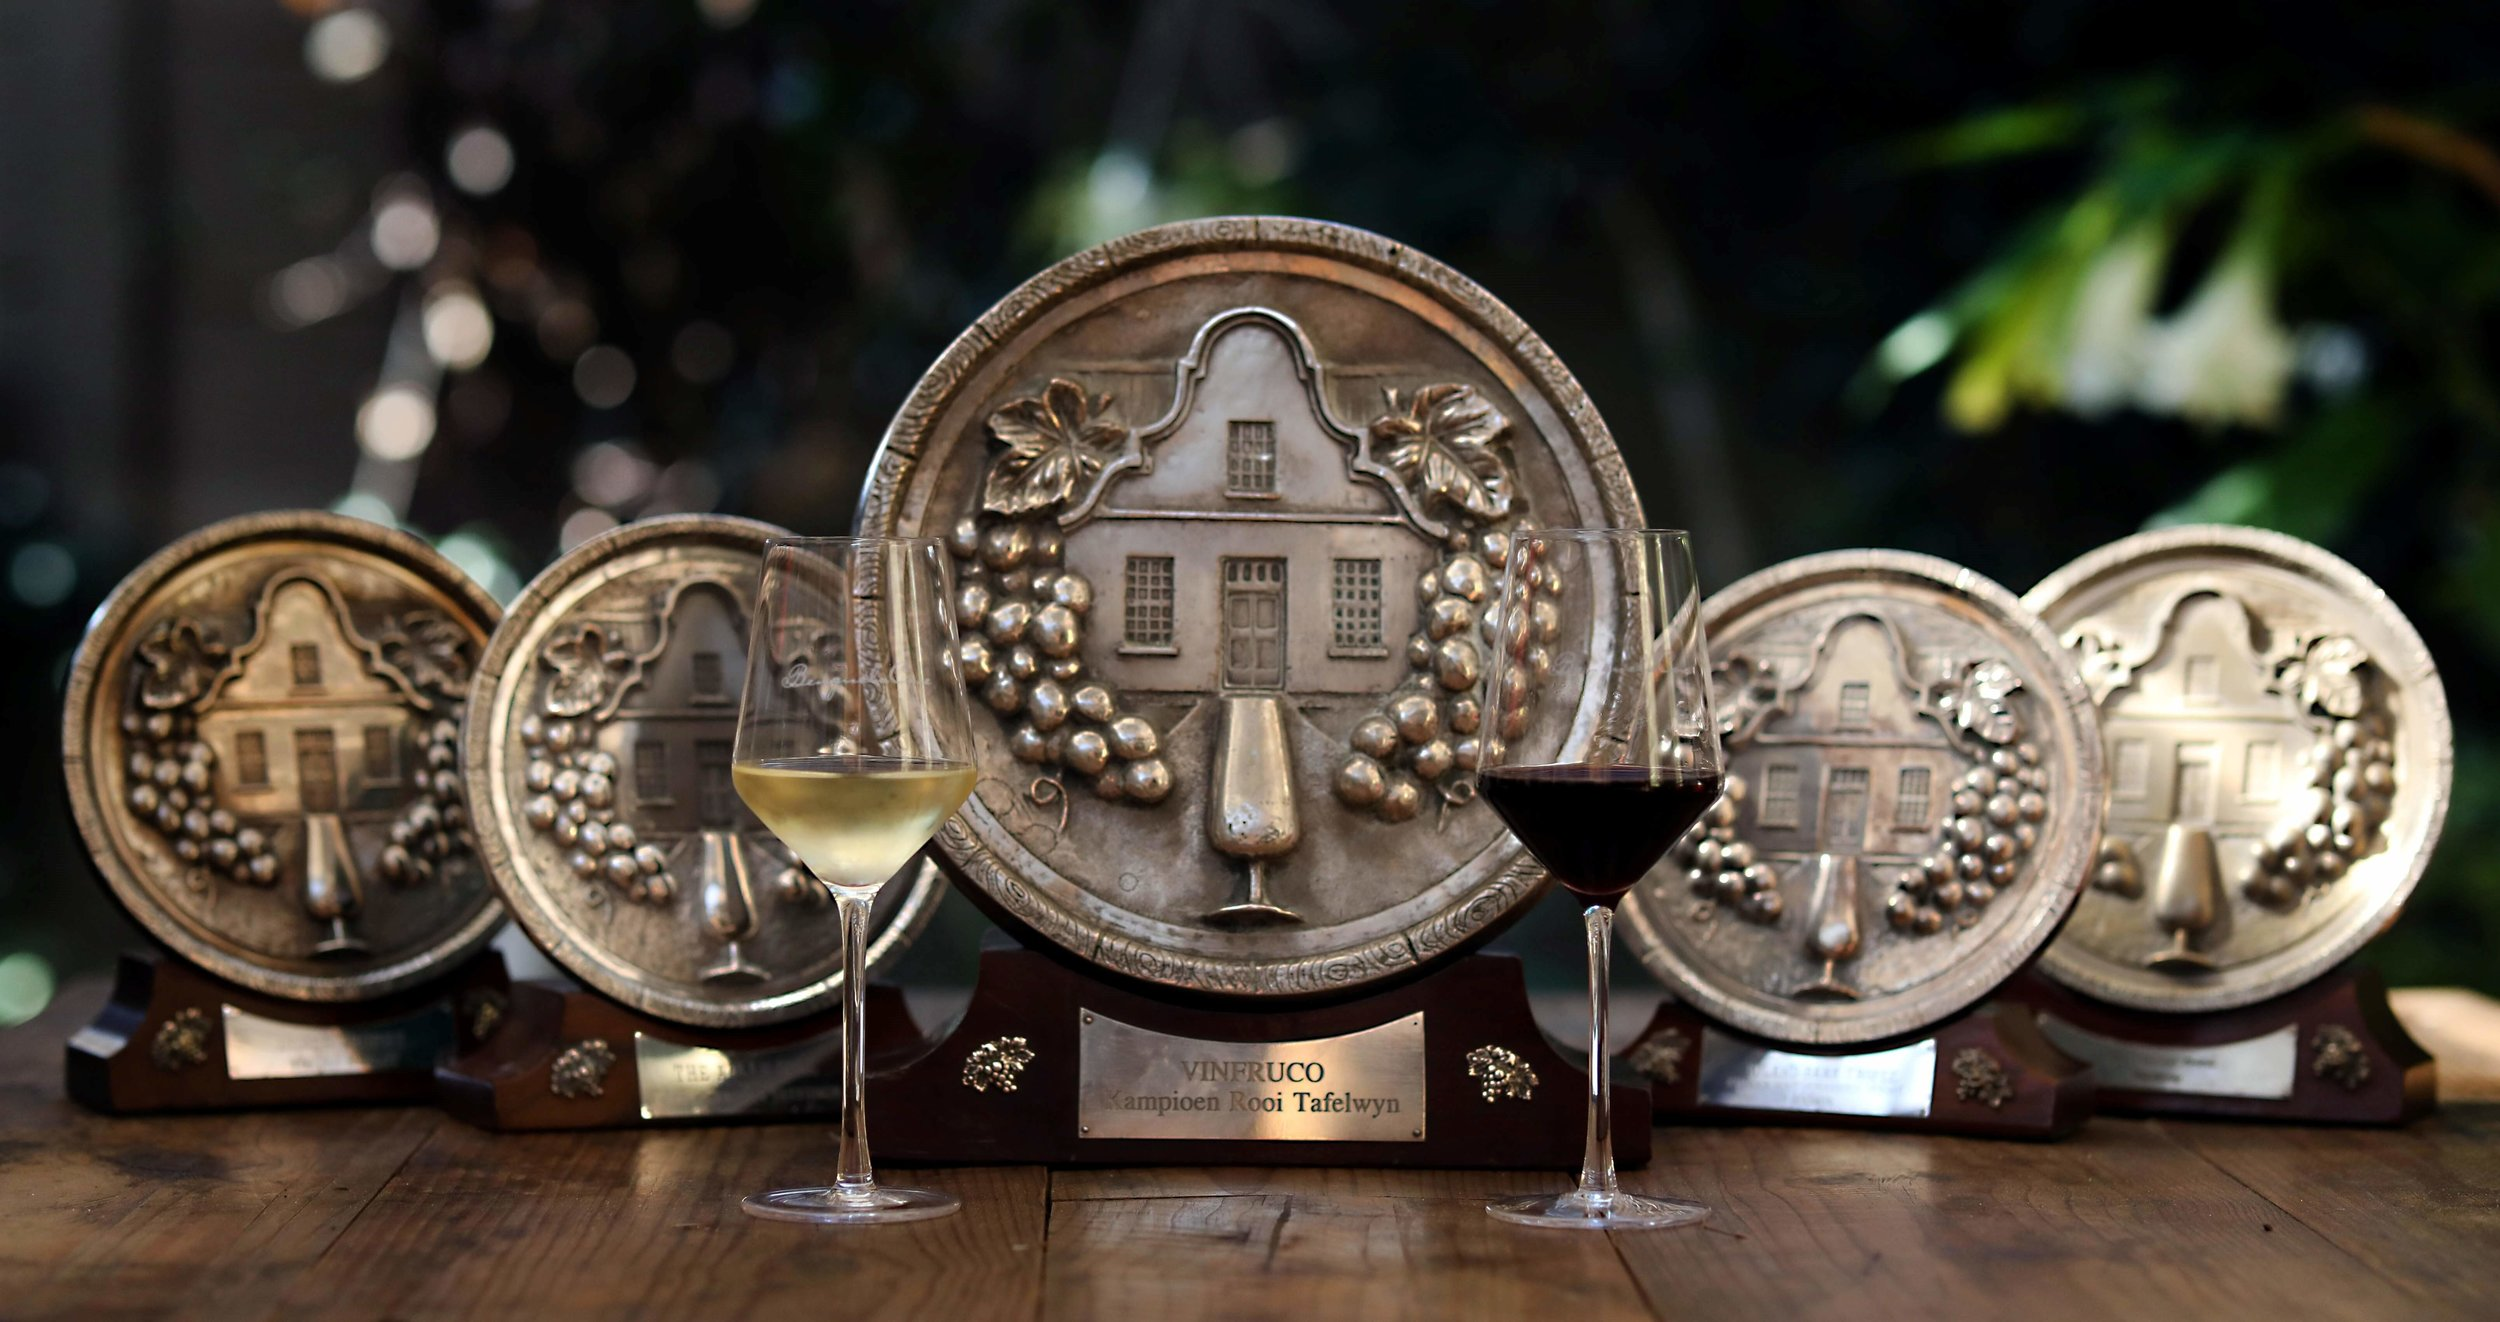 Regional Champion trophies were awarded for Chardonnay, Cabernet Sauvignon, Red Blend, Merlot and the overall red also went to their Cabernet Sauvignon.